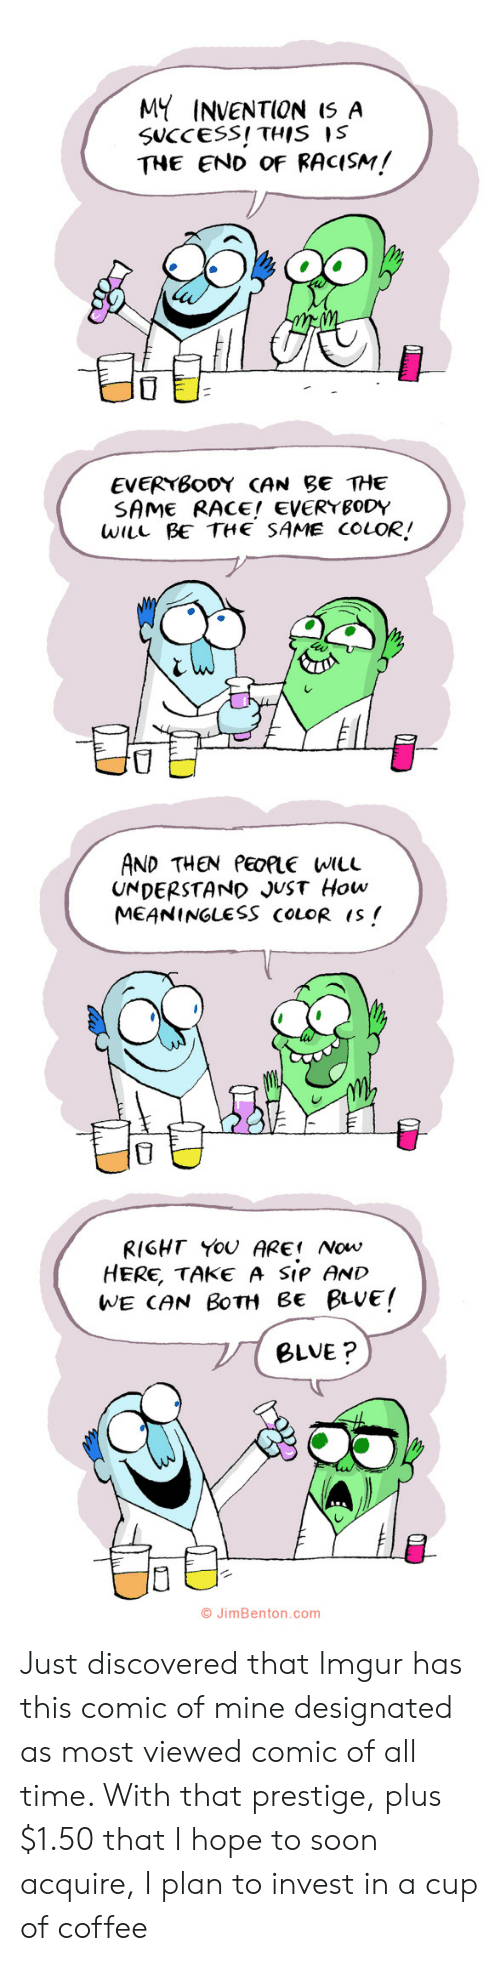 Imgur: MY INVENTION I5 A  SUCCESS! THIS IS  THE END OF RACISM!  EVERYBODY CAN BE THE  SAME RACE! EVERYBODY  WILL BE THE SAME COLOR!  AND THEN PEOPLE WILL  UNDERSTAND JUST How  MEANINGLESS COLOR IS  RIGHT YOU ARE Now  HERE, TAKE A SIP AND  WE CAN BOTH Be BLUE!  BLVE?  O JimBenton.com  י Just discovered that Imgur has this comic of mine designated as most viewed comic of all time. With that prestige, plus $1.50 that I hope to soon acquire, I plan to invest in a cup of coffee